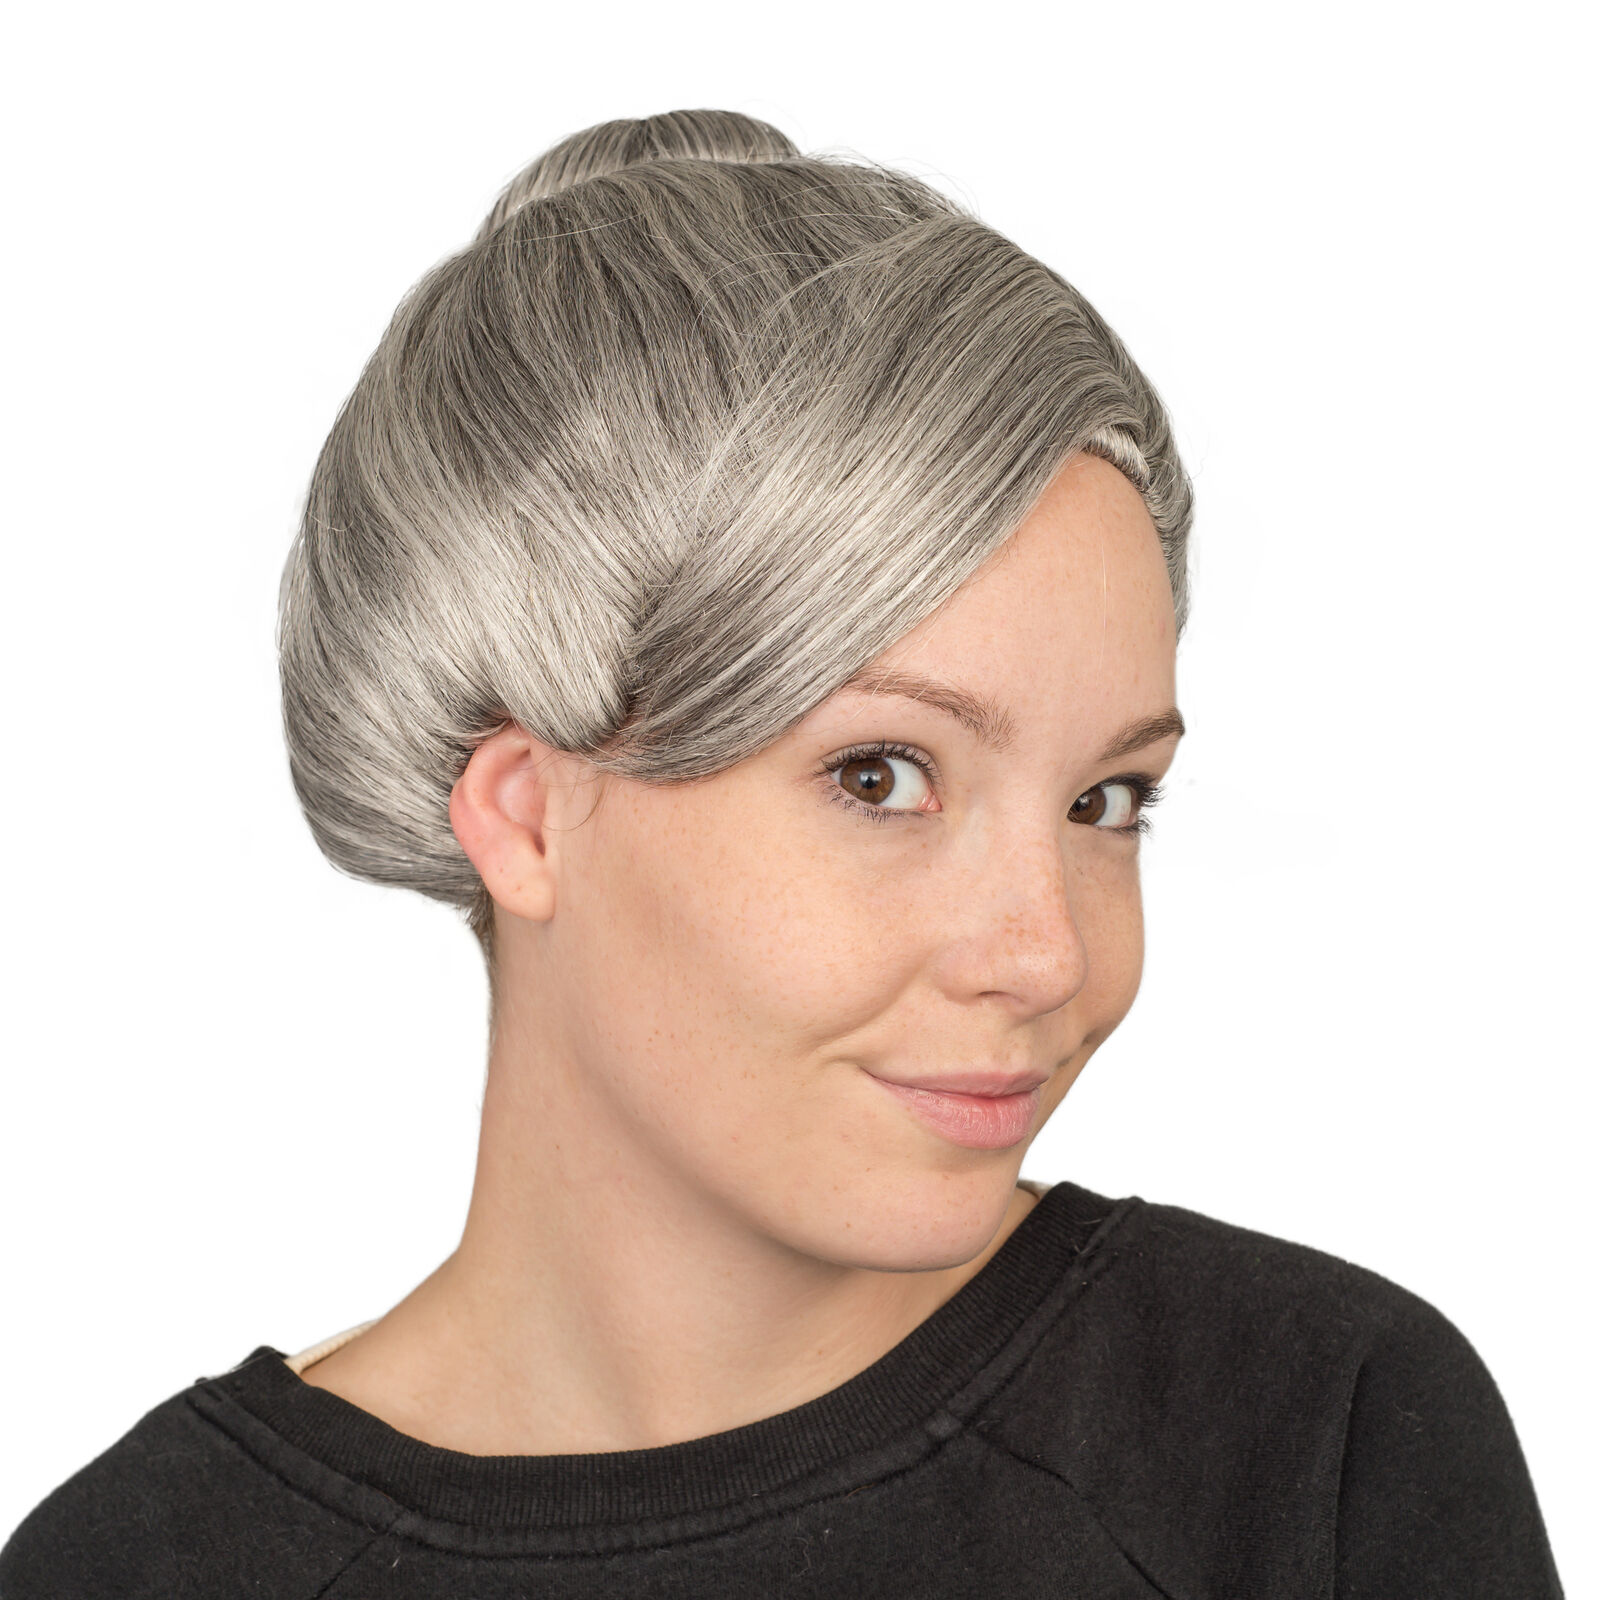 Granny Cosplay Wig with Hair Rollers for Halloween Costume Dress Up Party Old Lady Wig